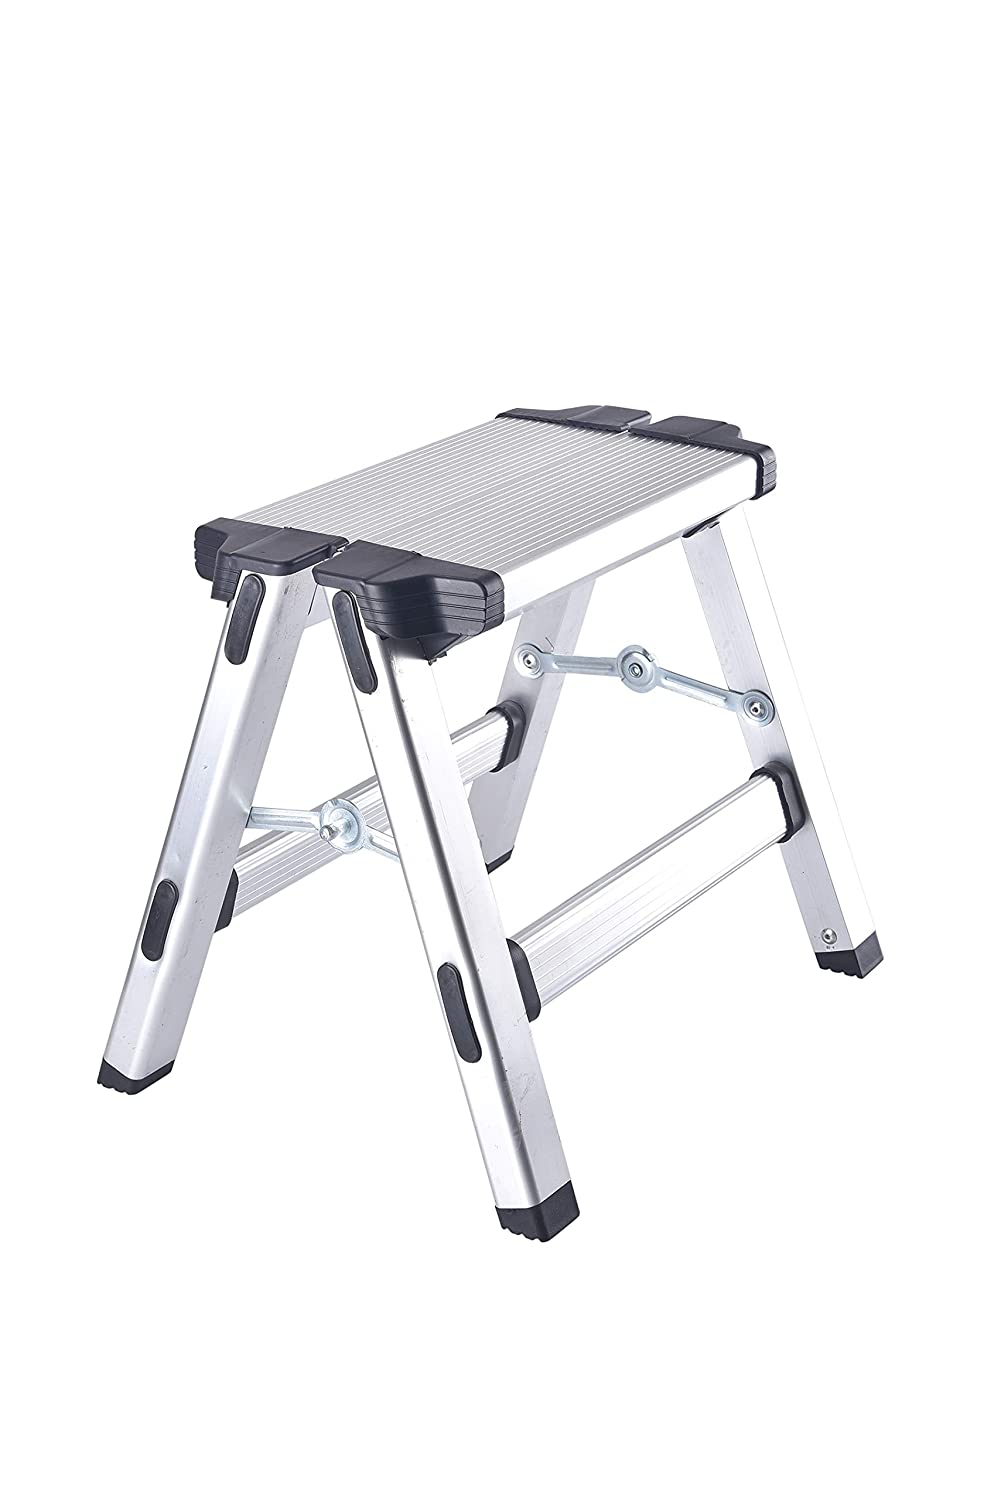 SavingPlus Aluminium Collapsible Step up Stool Folding Ladder Lightweight Workstand UK